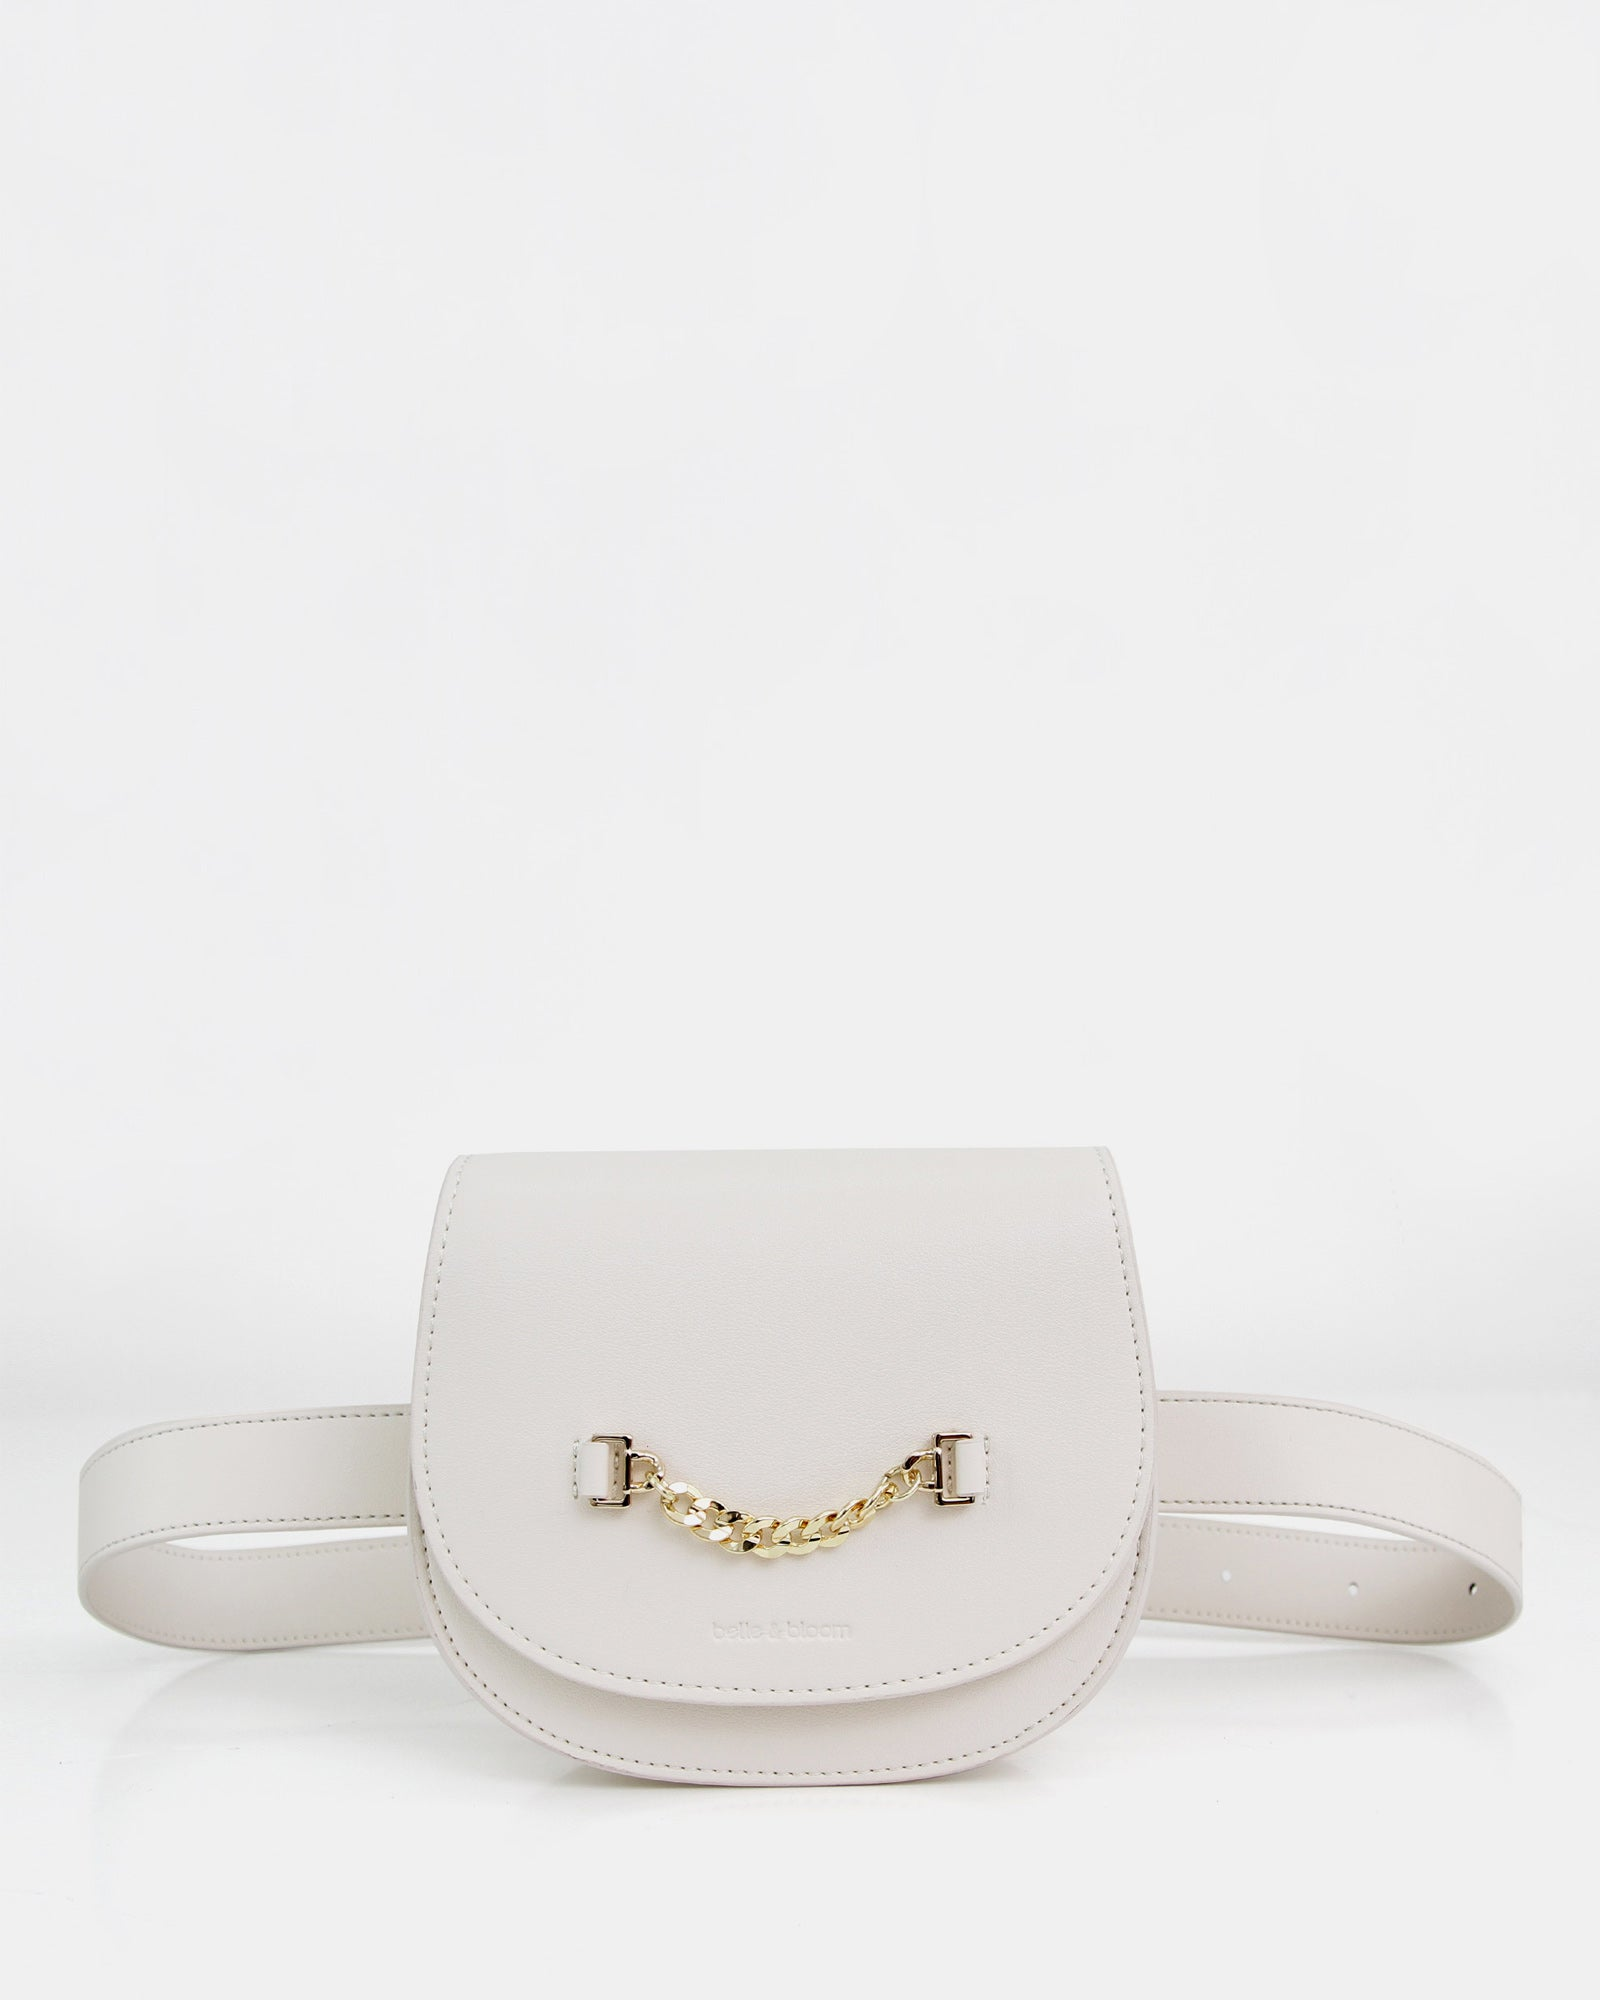 Ciao Bella Leather Belt Bag - Cream